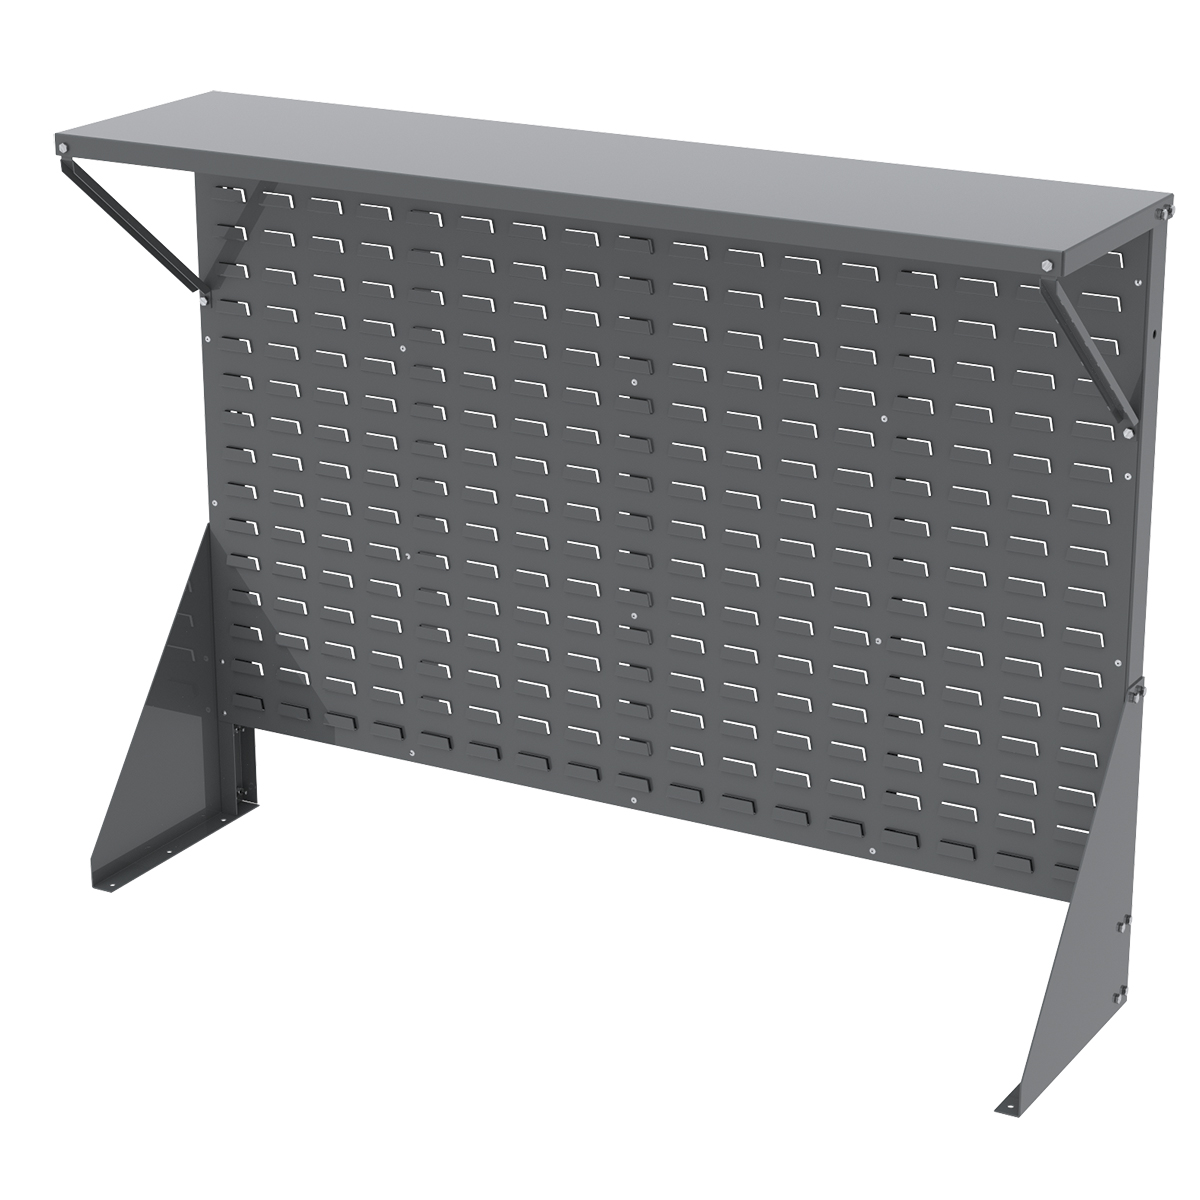 Item DISCONTINUED by Manufacturer.  Low Profile Floor Rack 1-Sided, Shelf for AkroBins, Gray (30650GY).  This item sold in carton quantities of 1.